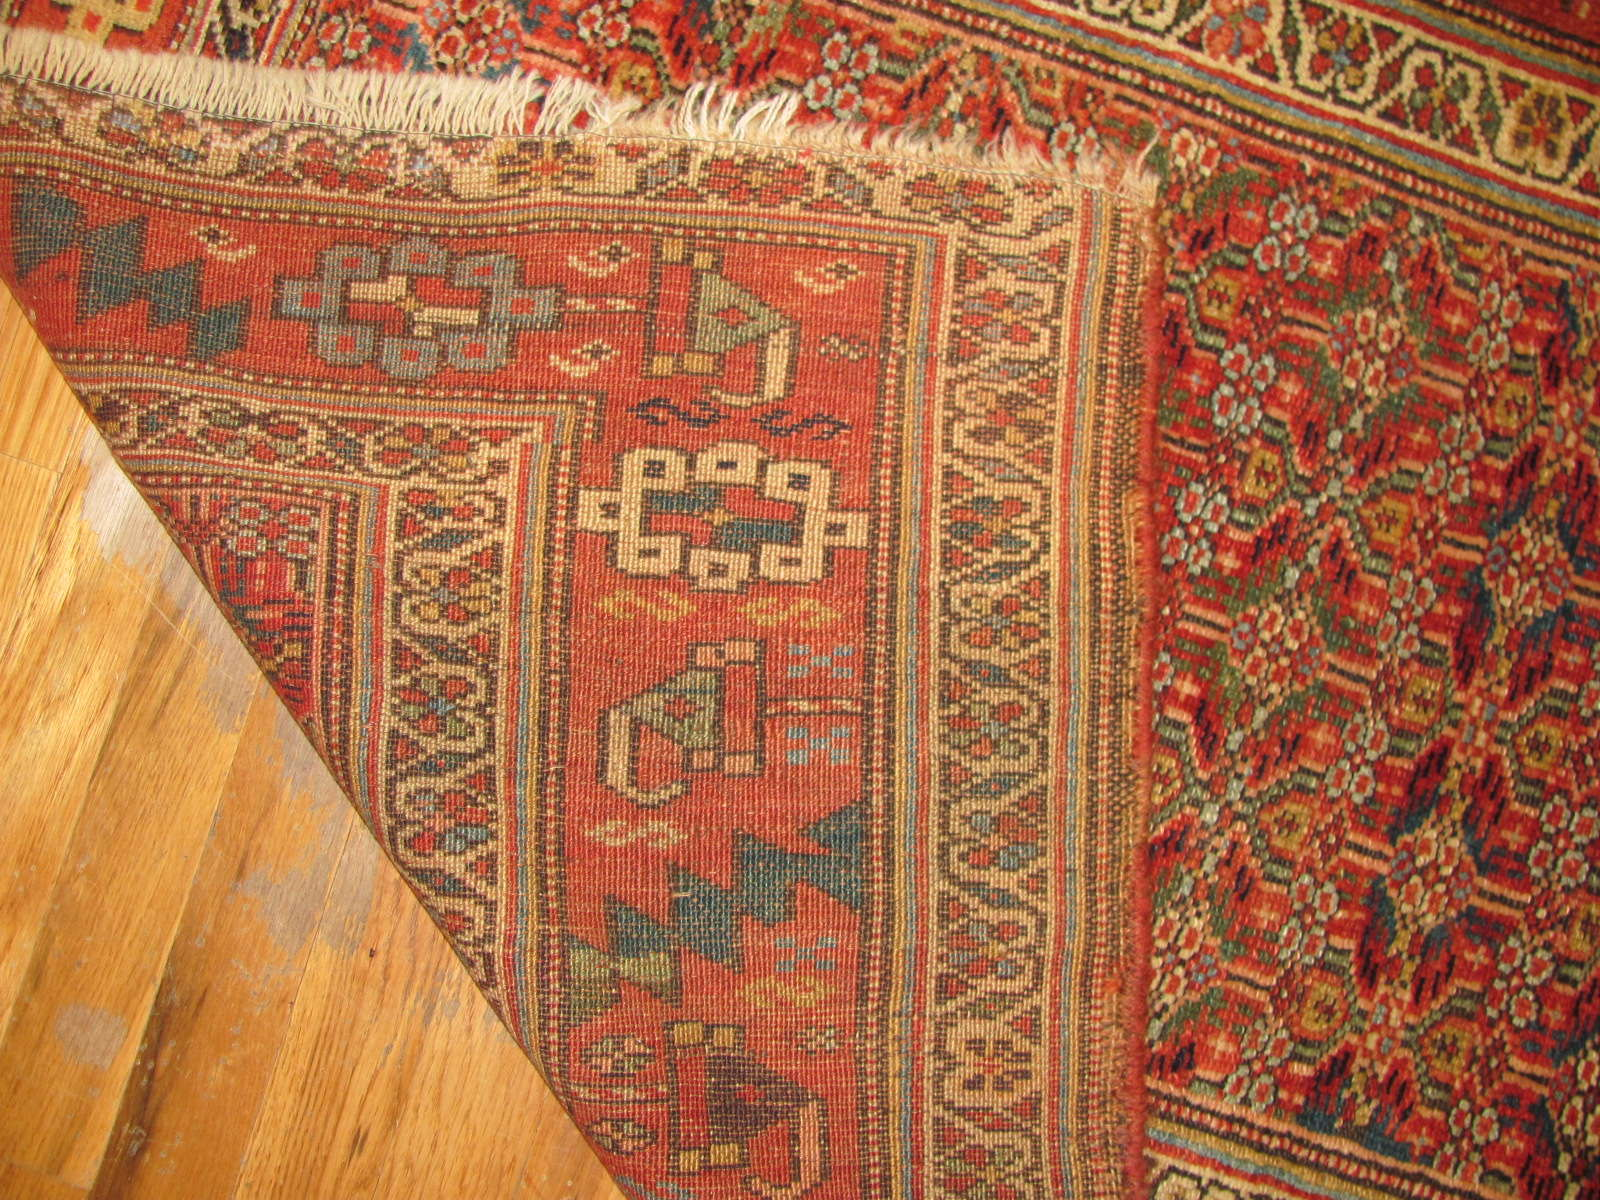 24721 antique persian kurd rug 3,8 x 6 -1